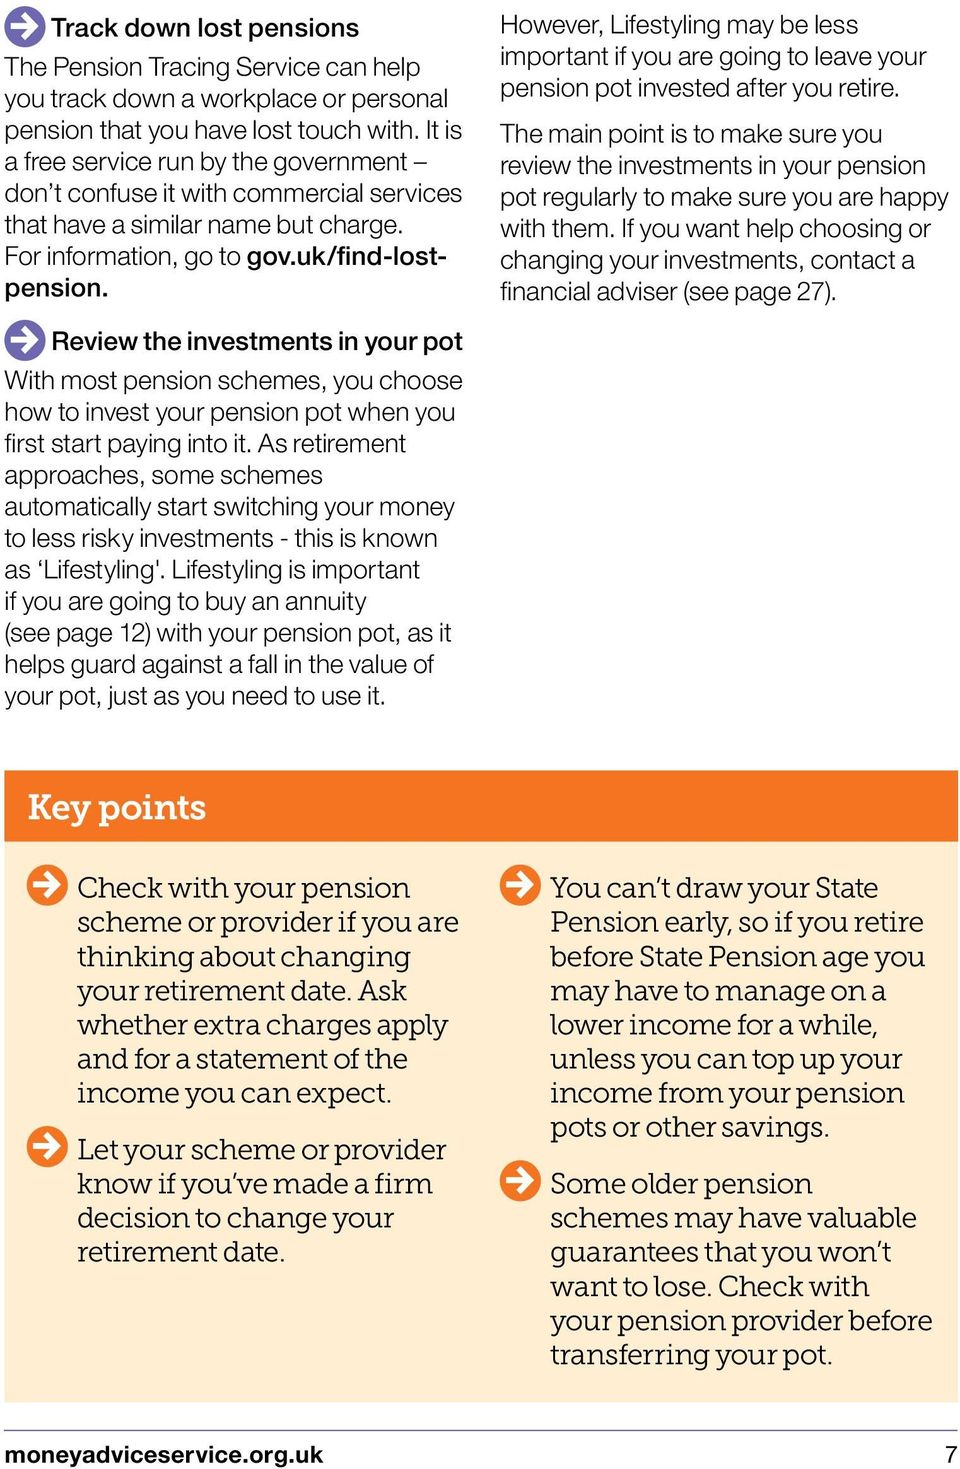 However, Lifestyling may be less important if you are going to leave your pension pot invested after you retire.